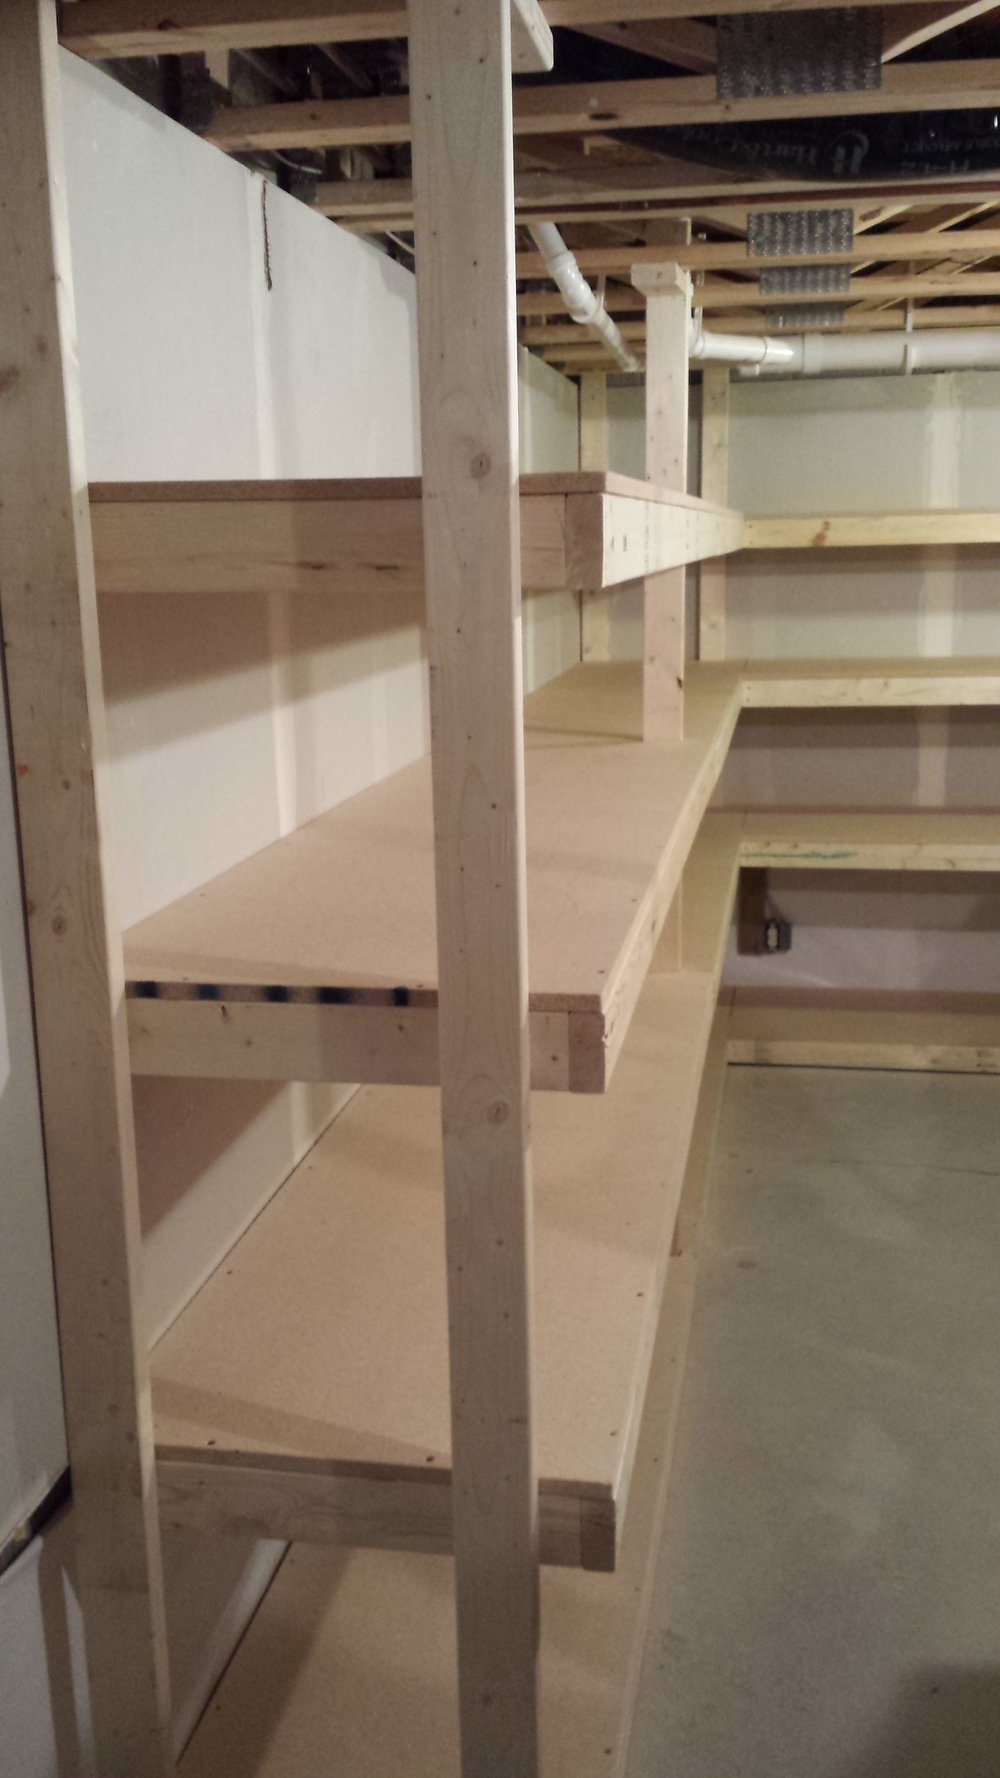 New shelves in basement storage room